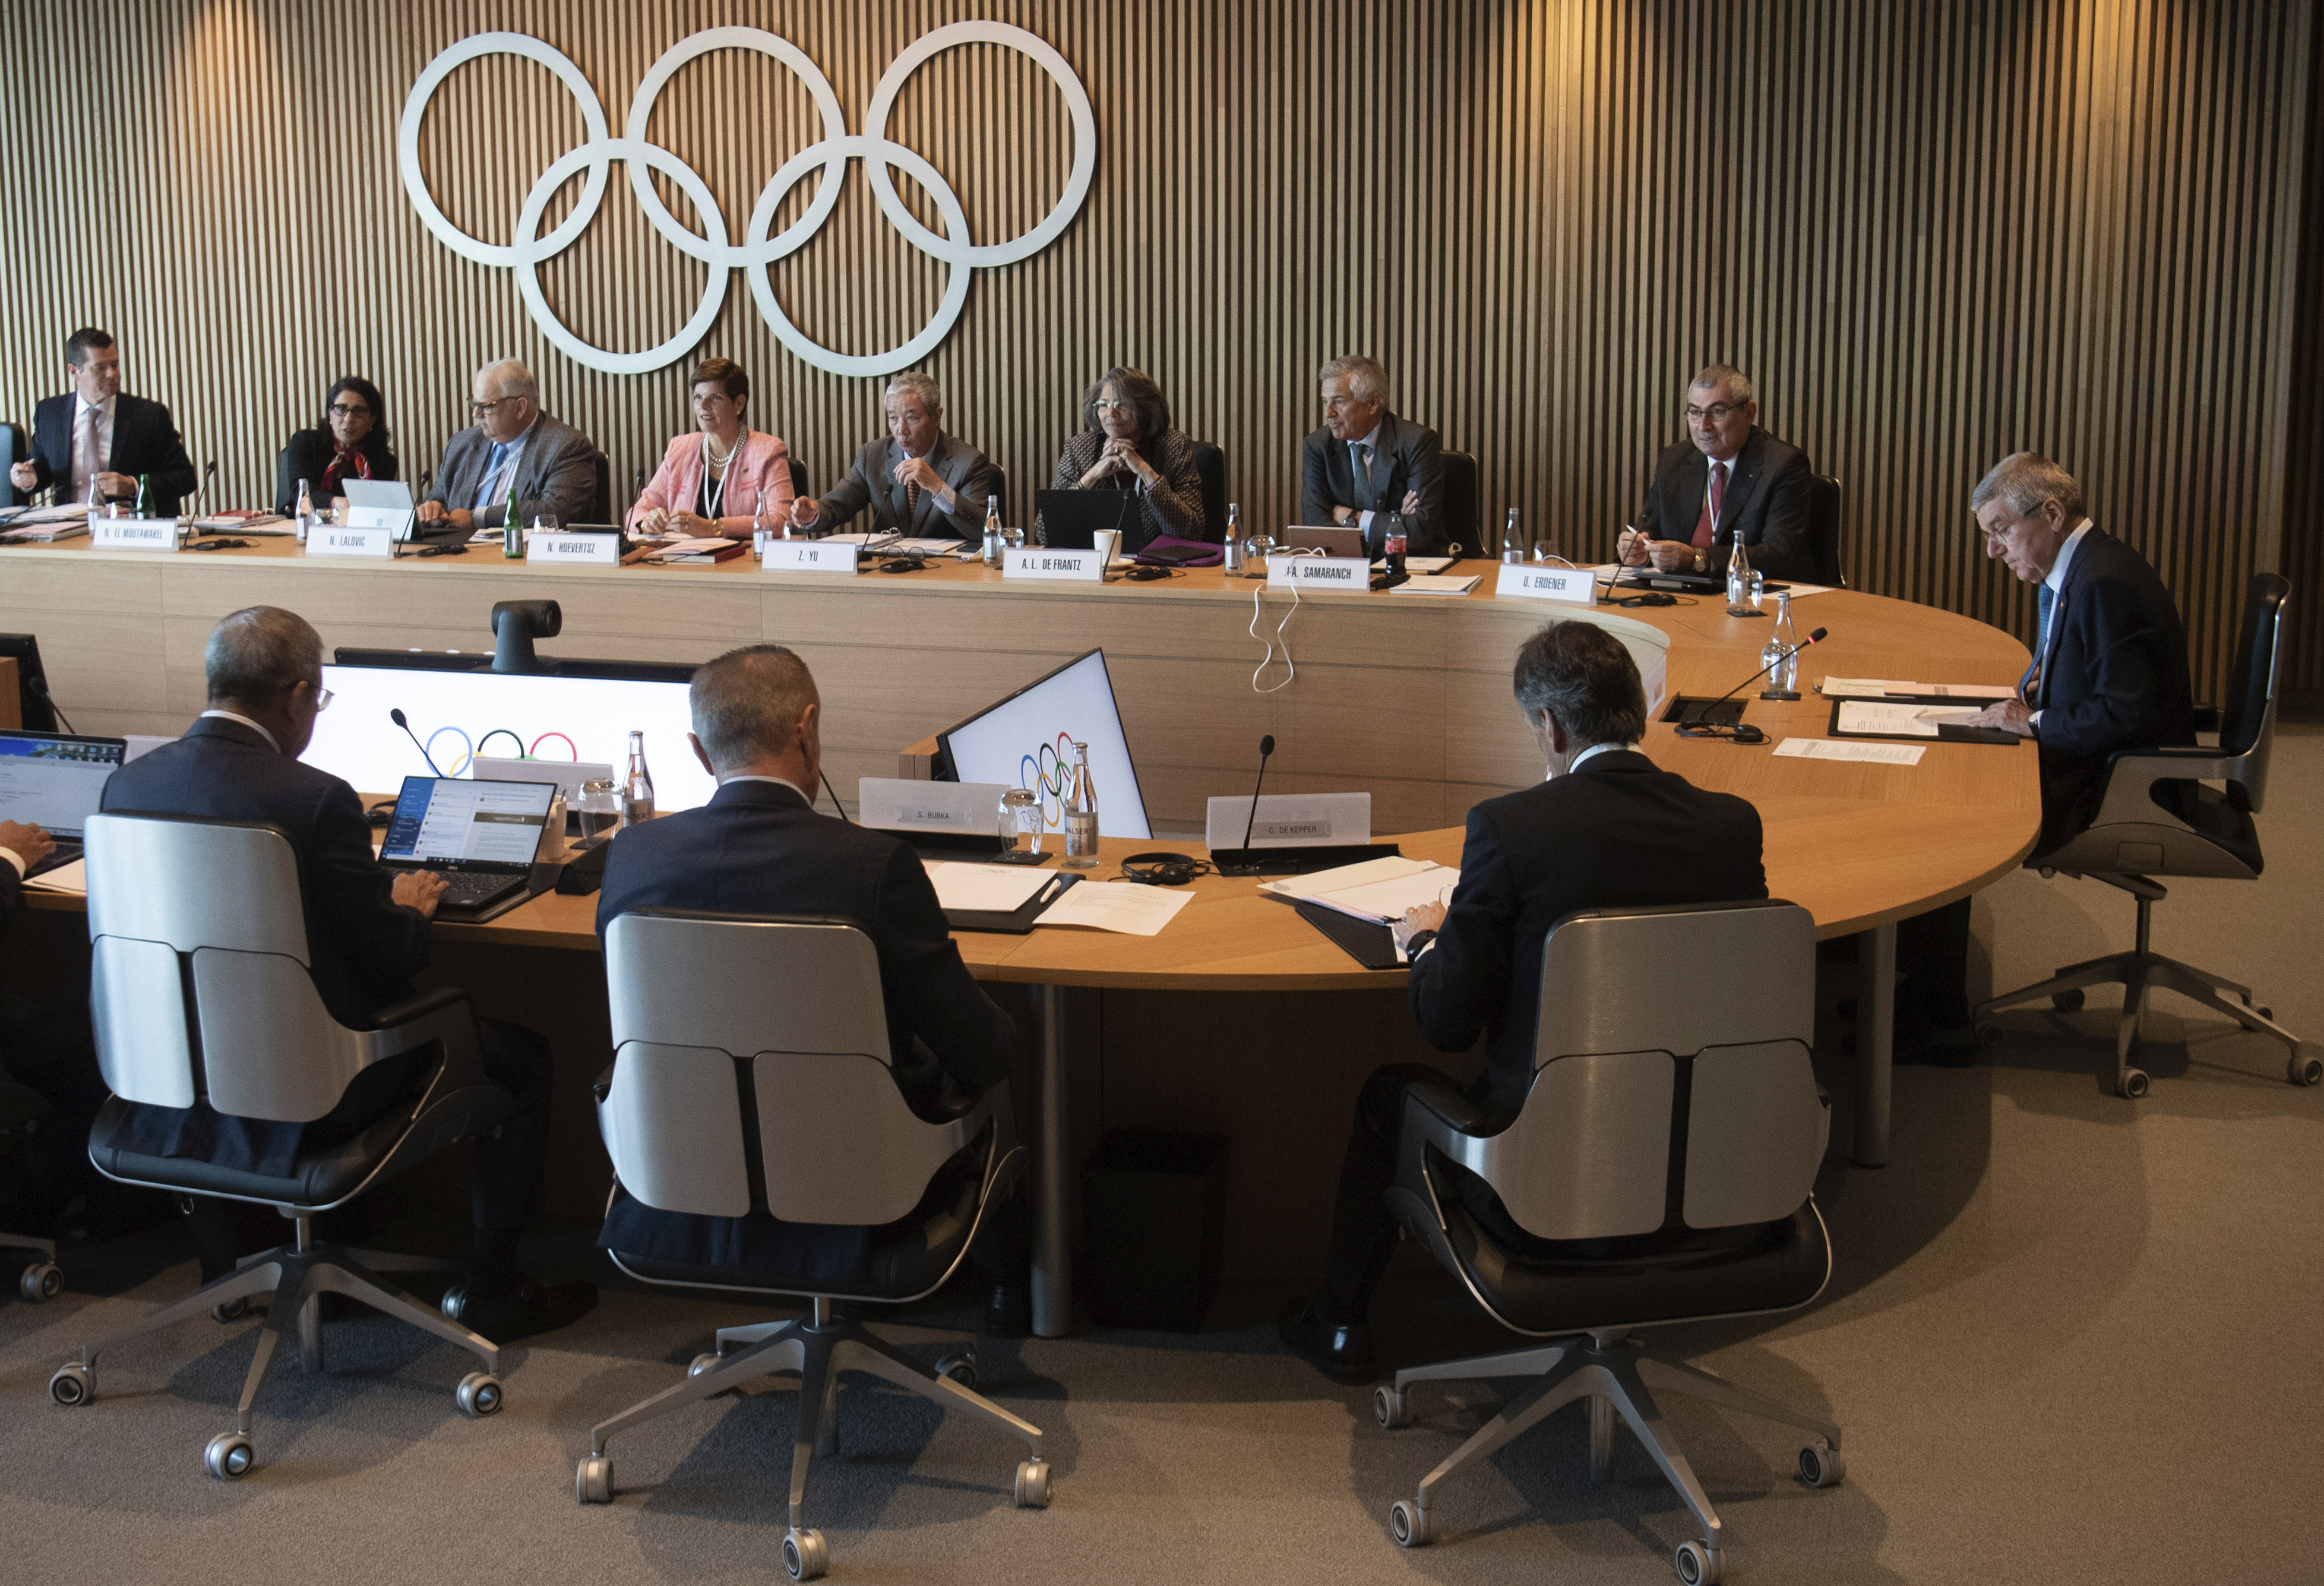 International Olympic Committee (IOC) president Thomas Bach, right, from Germany attends the opening of the executive board meeting of the International Olympic Committee (IOC) at the Olympic House in Lausanne, Switzerland, on March 3, 2020.